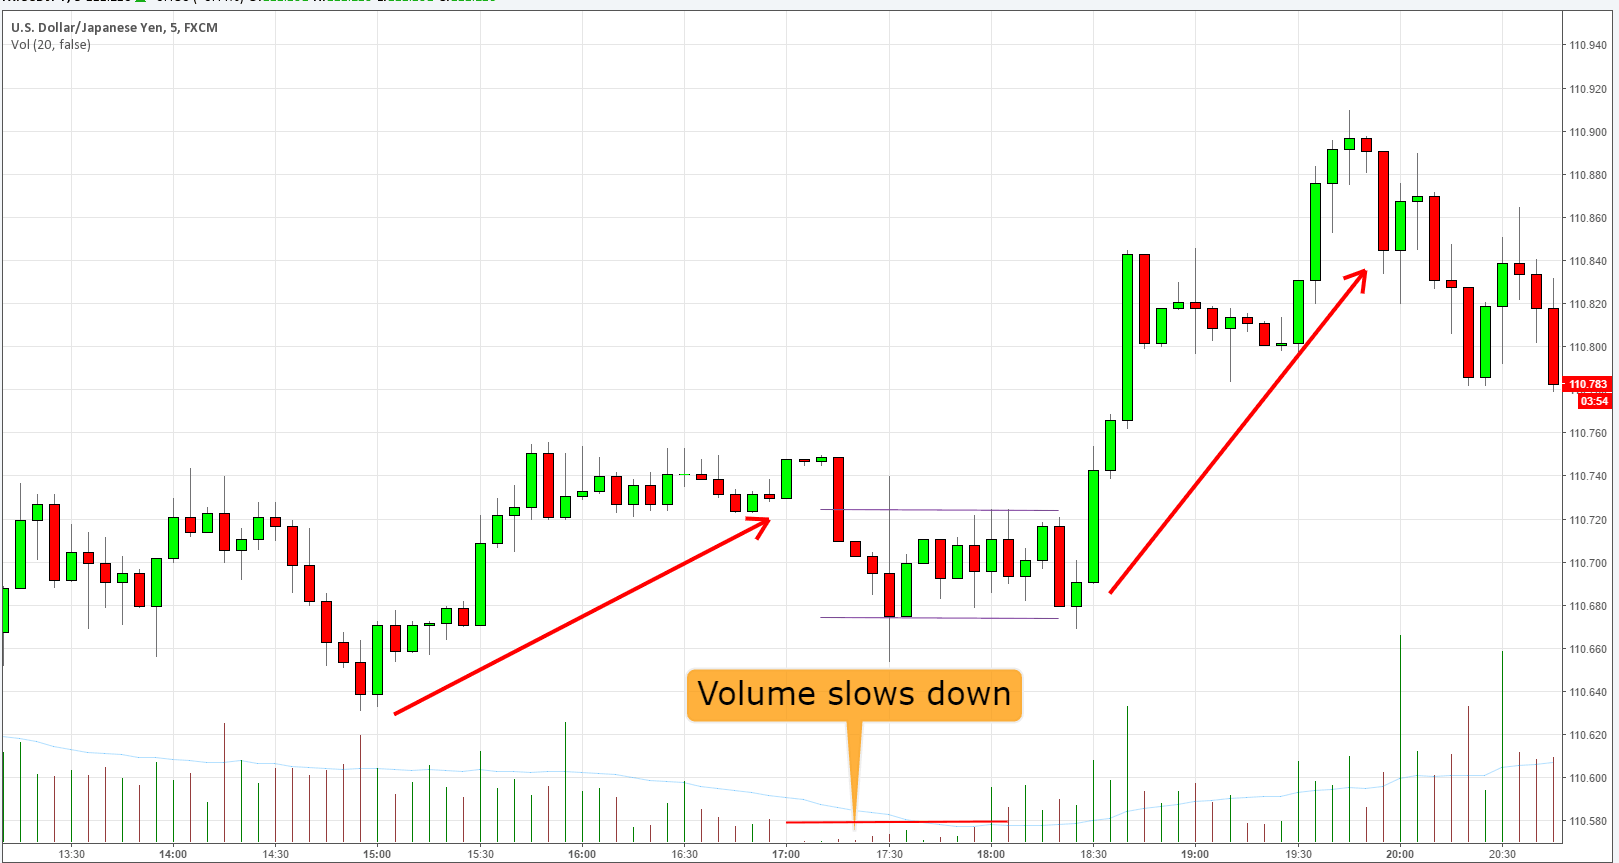 Volume_rallenta_forex_scalping